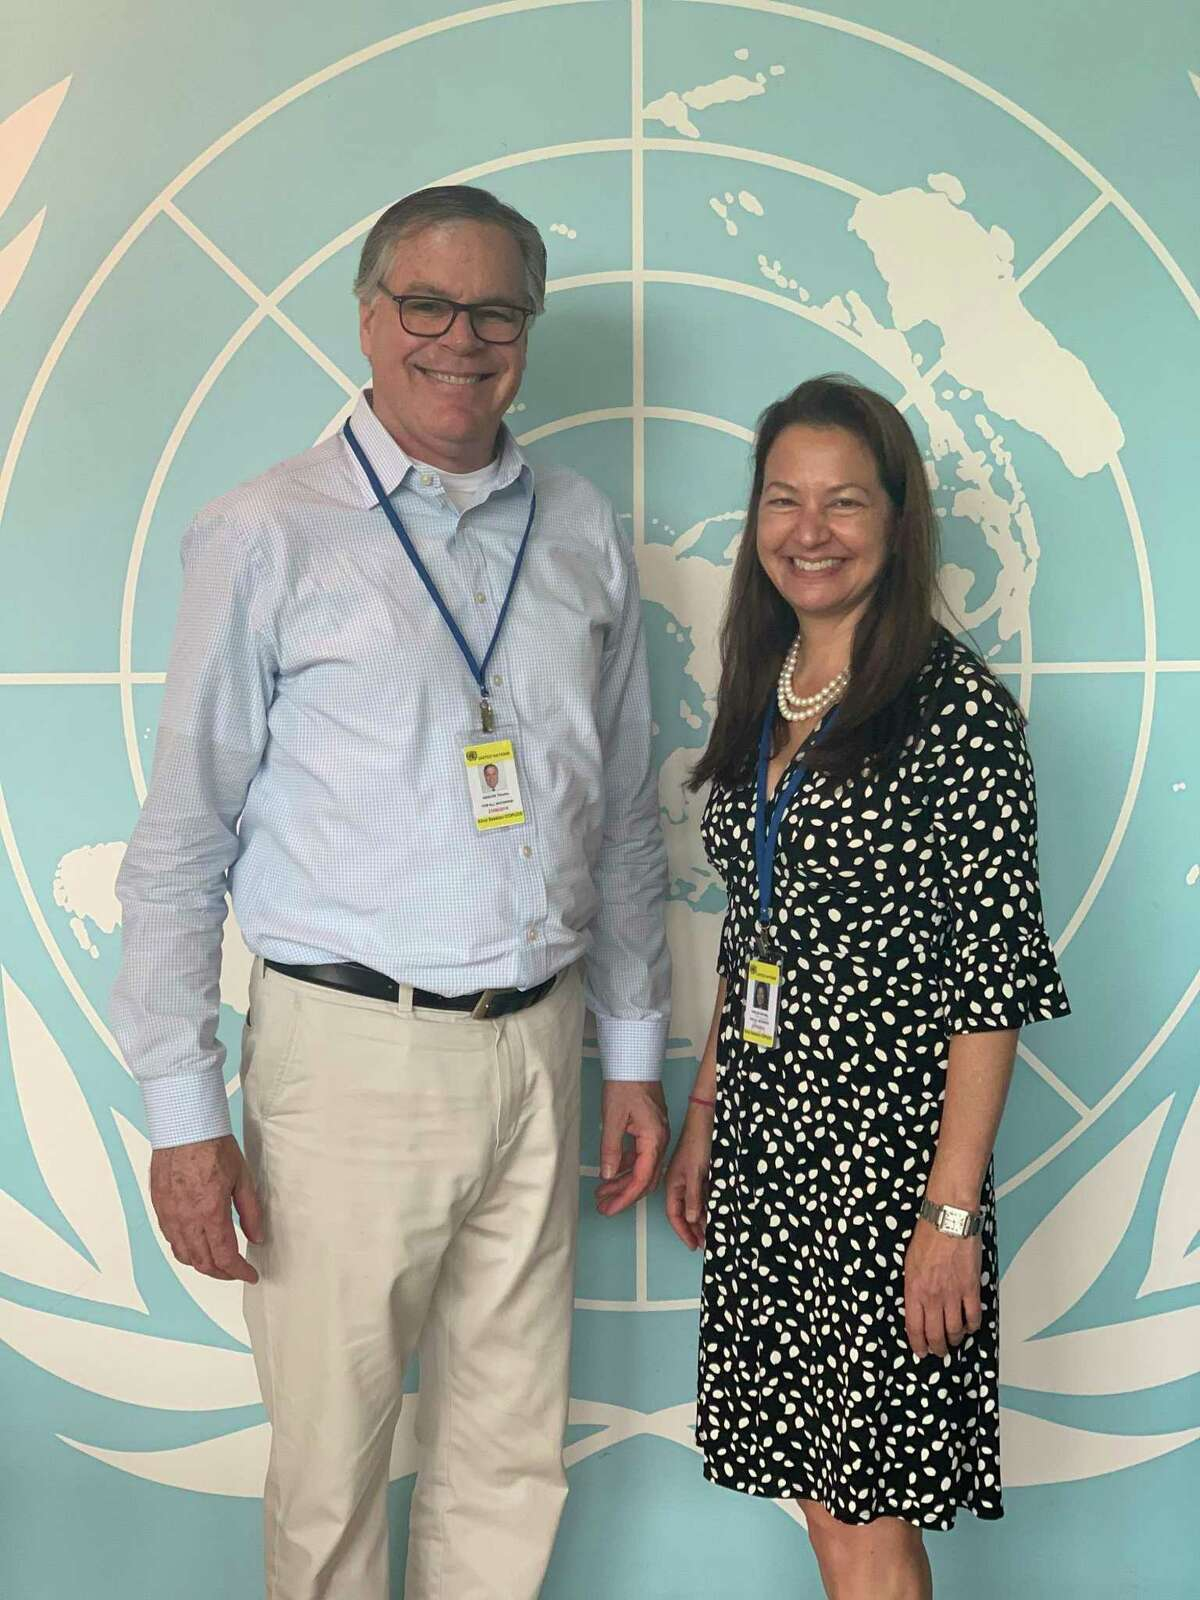 Tim and Michelle Hanlon of New Canaan established For All Moonkind to protect historic lunar exploration sites on the Moon. Their organization has been granted observer status by the United Nations.